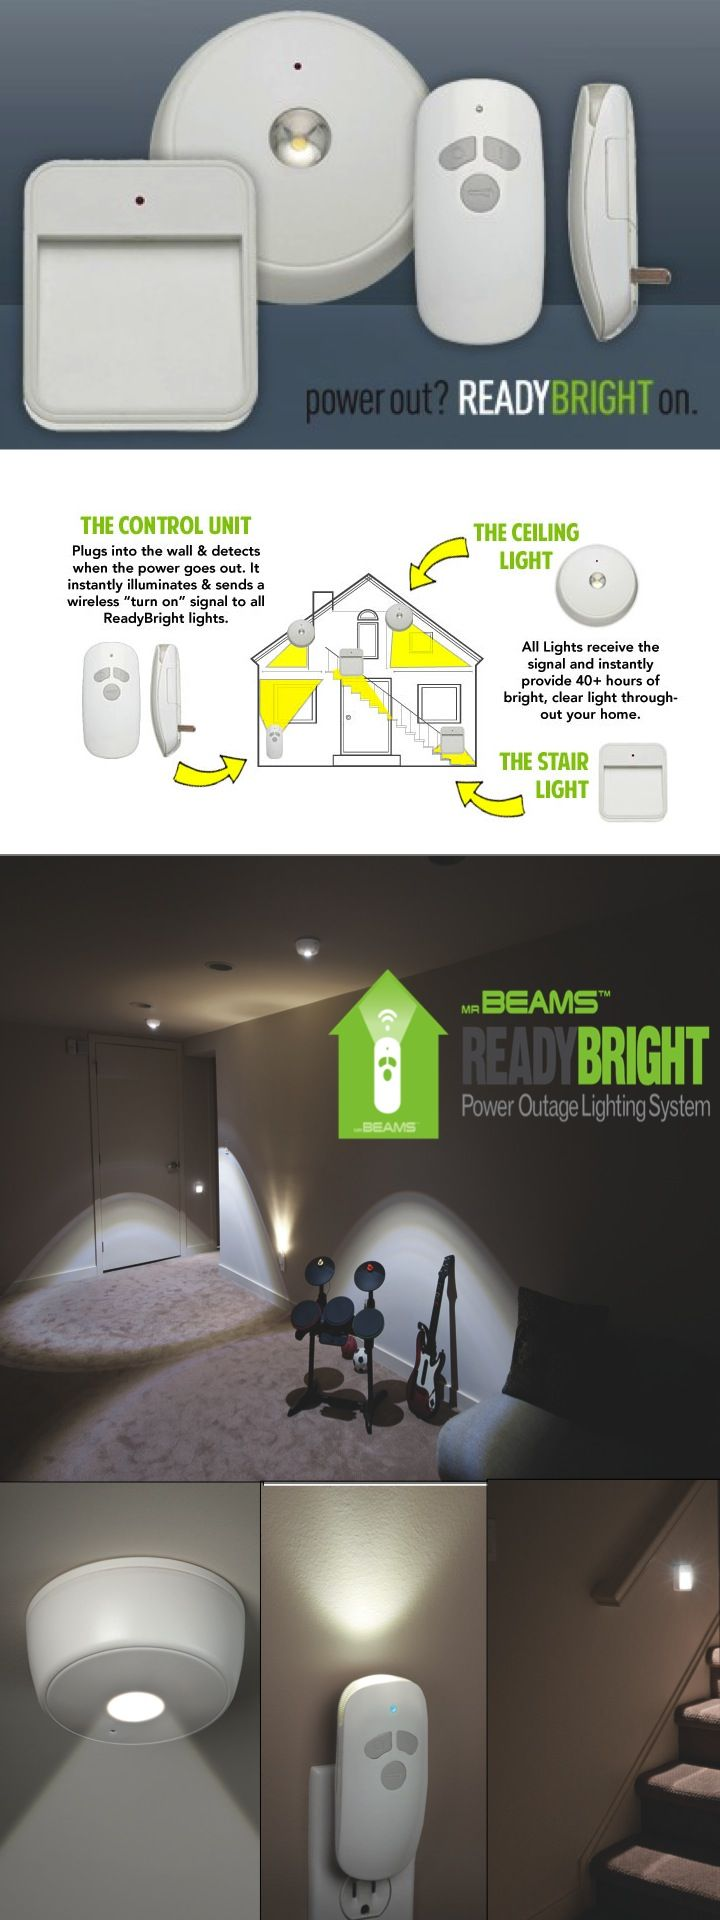 Something every home needs!  Be prepared and keep your family safe the next time the power goes out with the ReadyBright Power Outage Kit.  It provides light for up to 40 hours on one set of batteries.  Easy/quick DIY installation. These wireless, battery-operated LED lights are perfect for stairways, closets, and under cabinets.